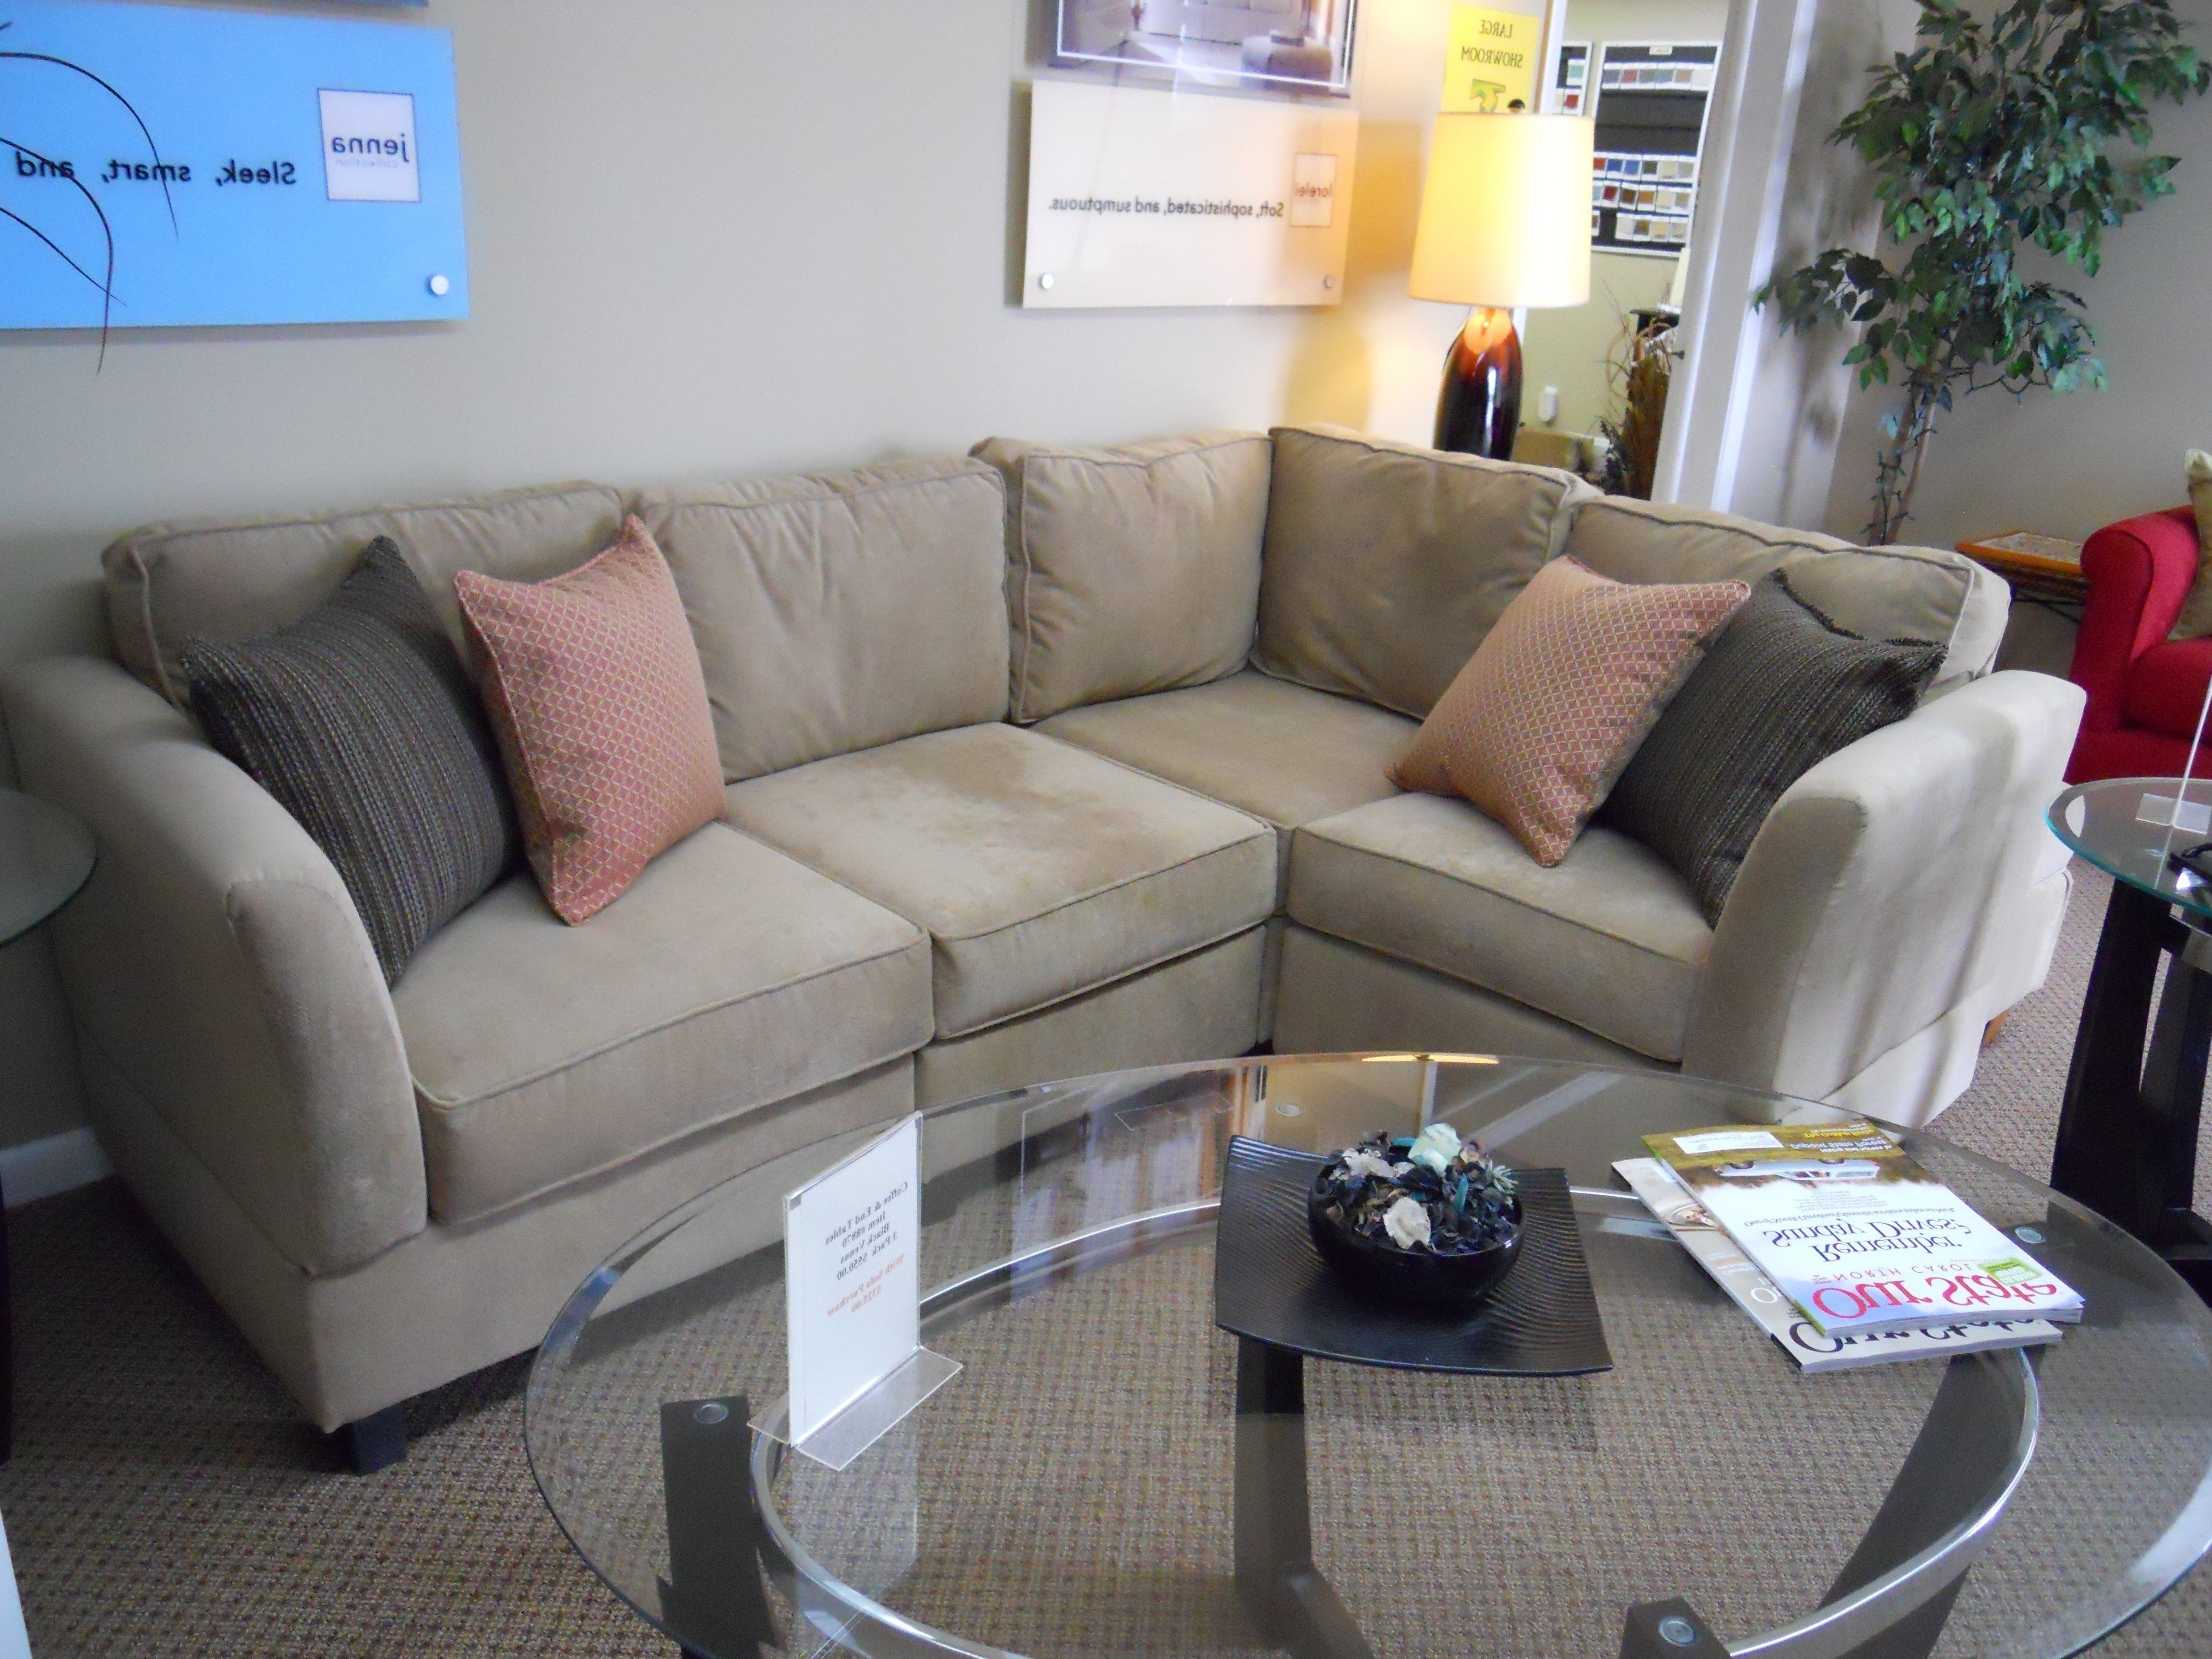 Widely Used Reclining Sectional Sofas For Small Spaces W Script With Small For Sectional Sofas For Small Areas (View 8 of 15)